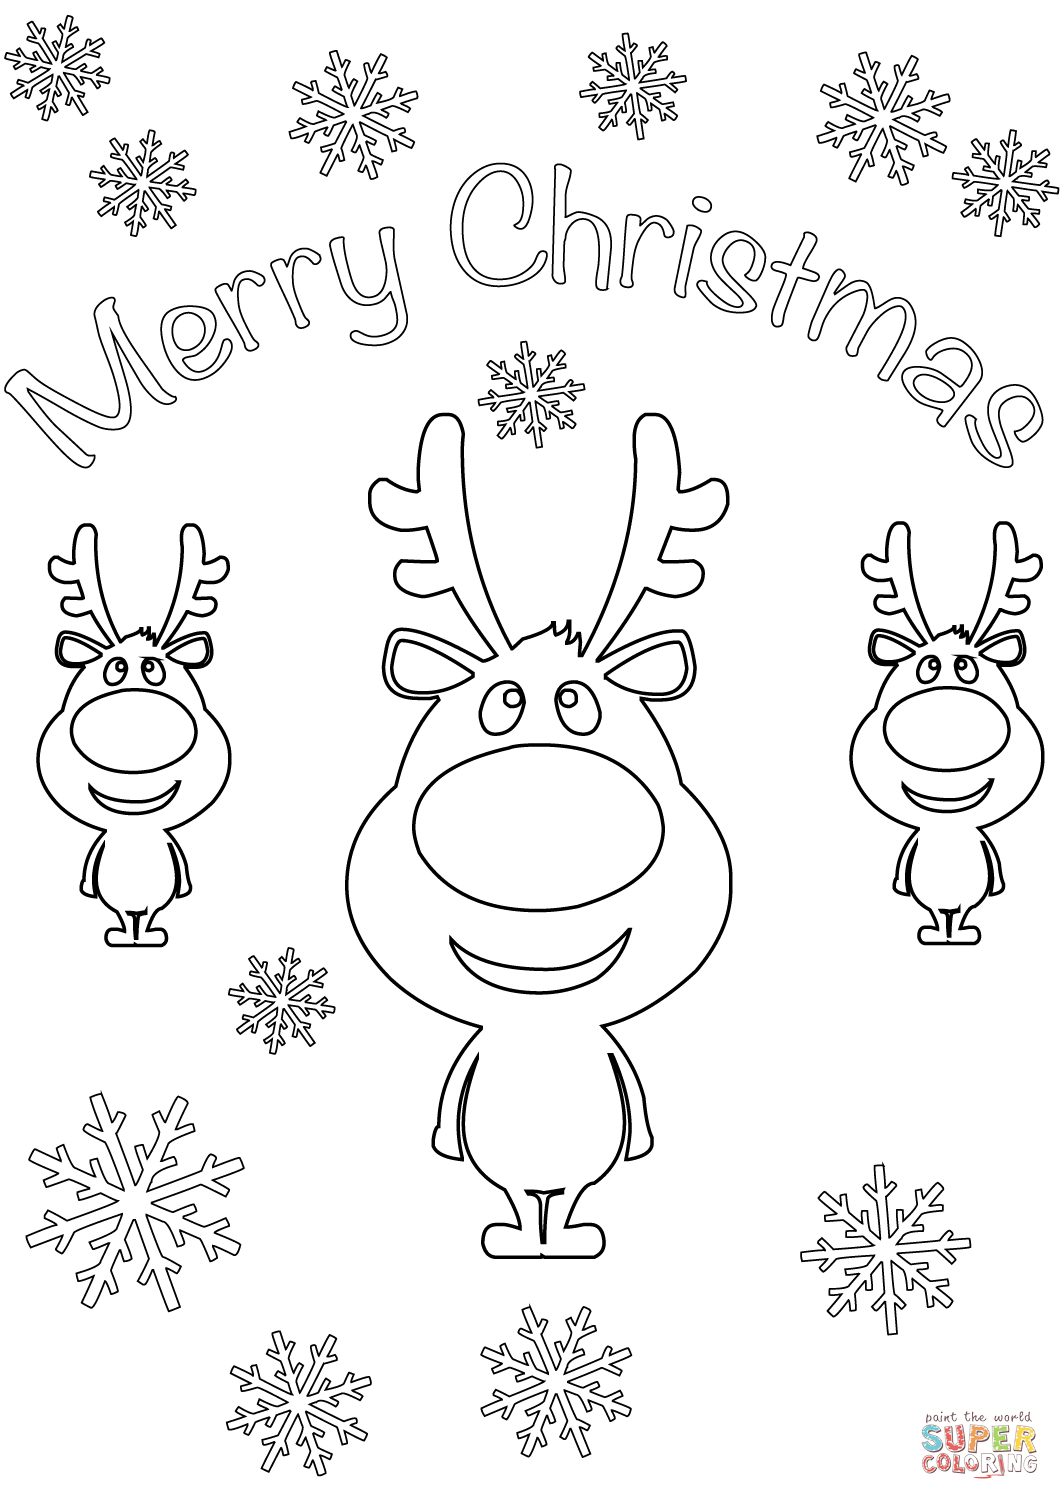 Christmas Card Colouring Pages With Merry Cartoon Reindeers Coloring Page Free